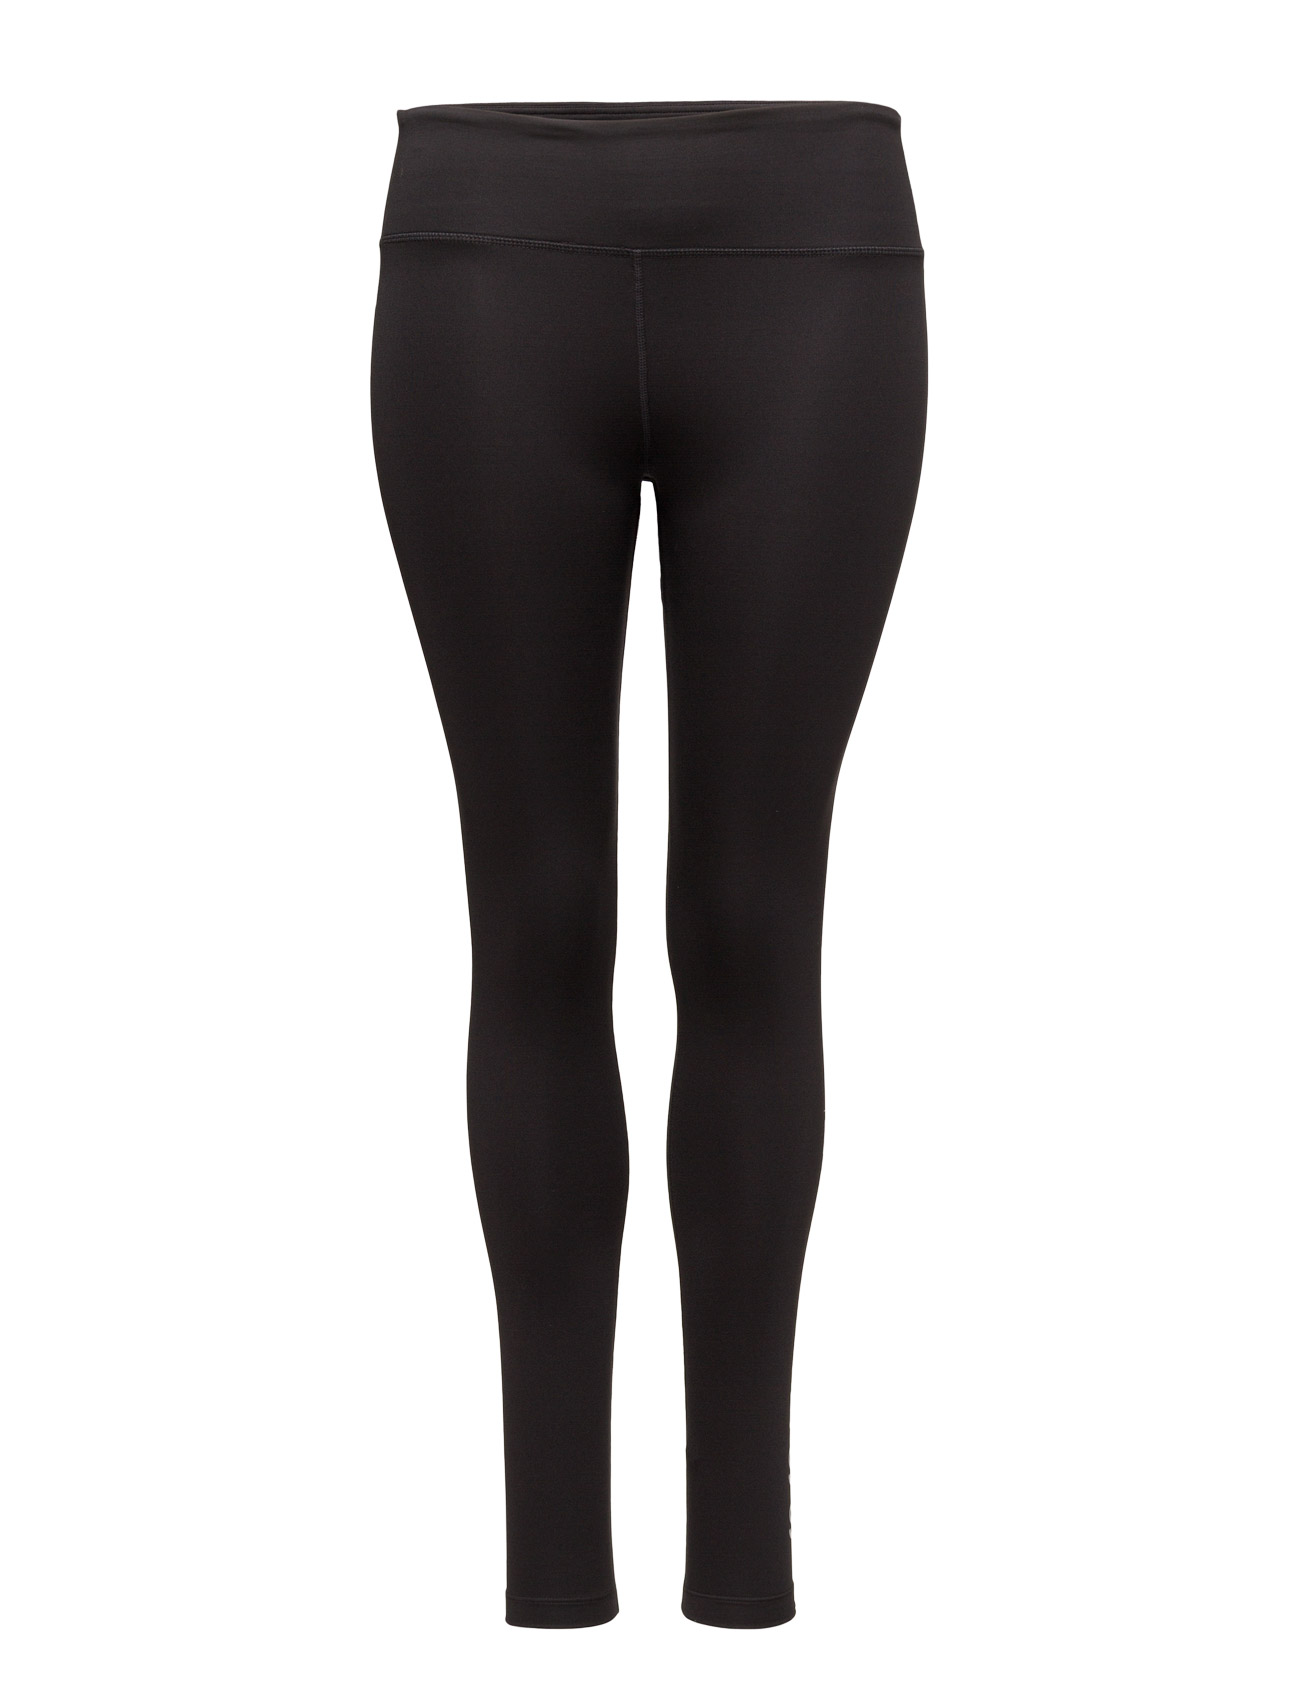 Slimming Effect Leggings Mango Sports Trænings leggings til Kvinder i Sort